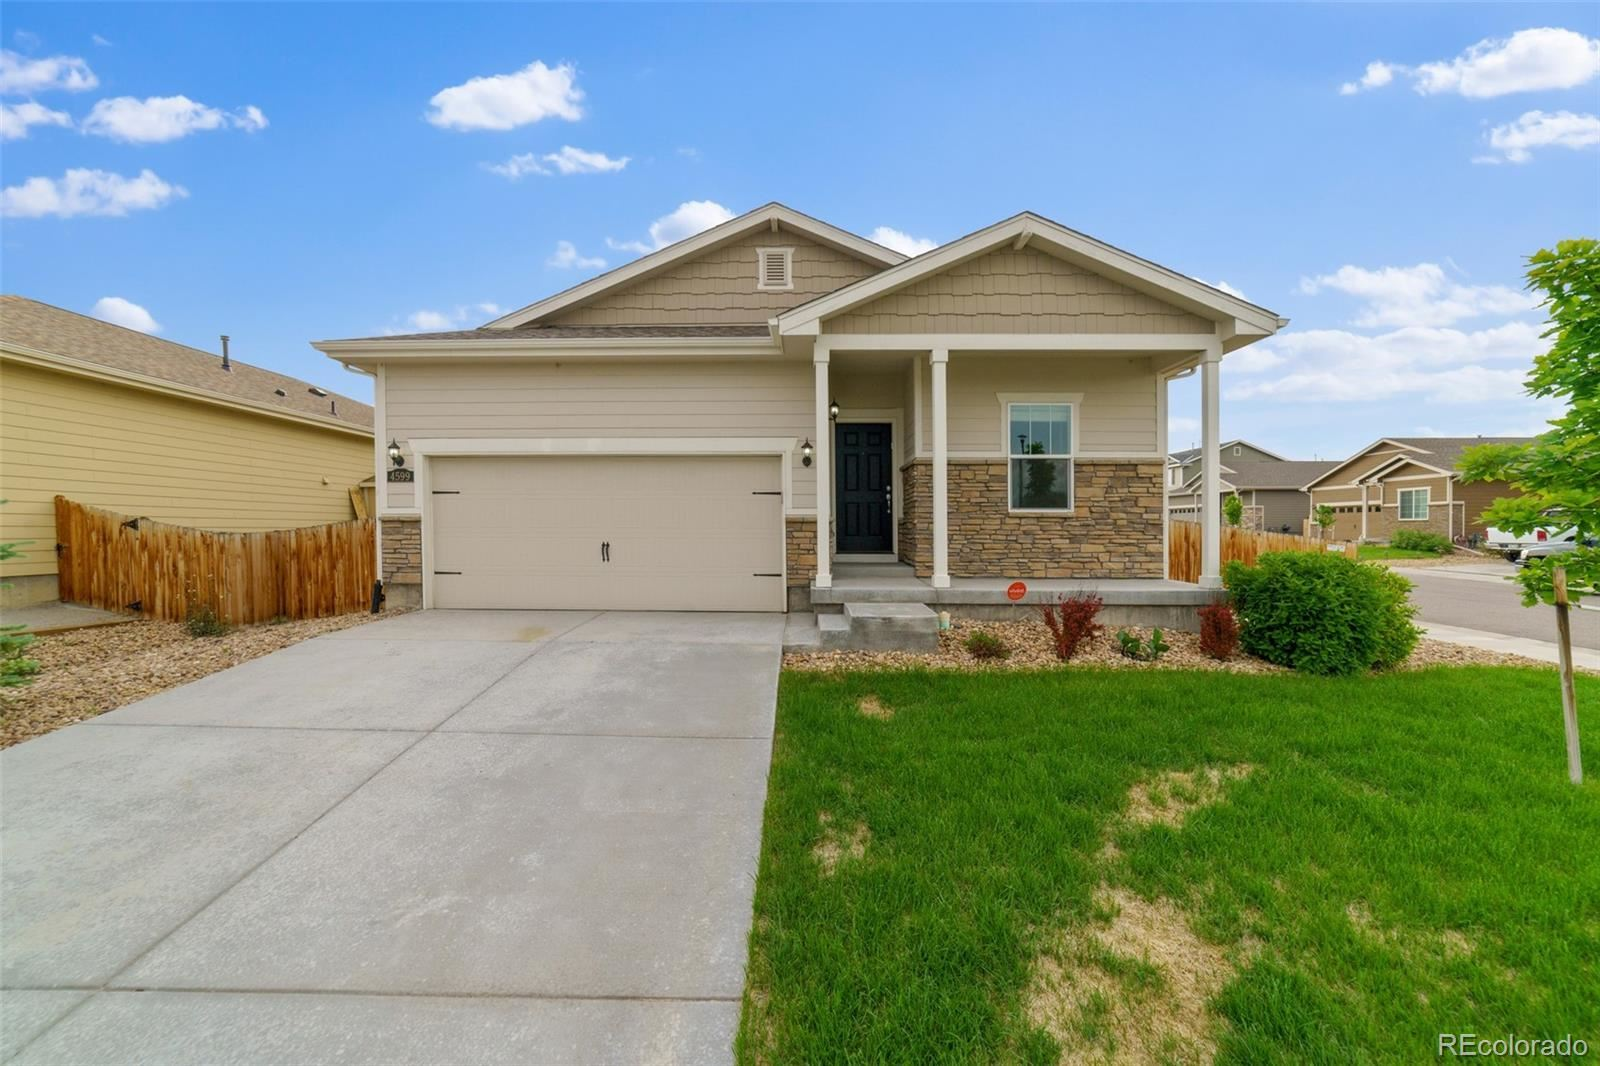 4599 E 95th Court, Thornton, CO 80229 - #: 5518429